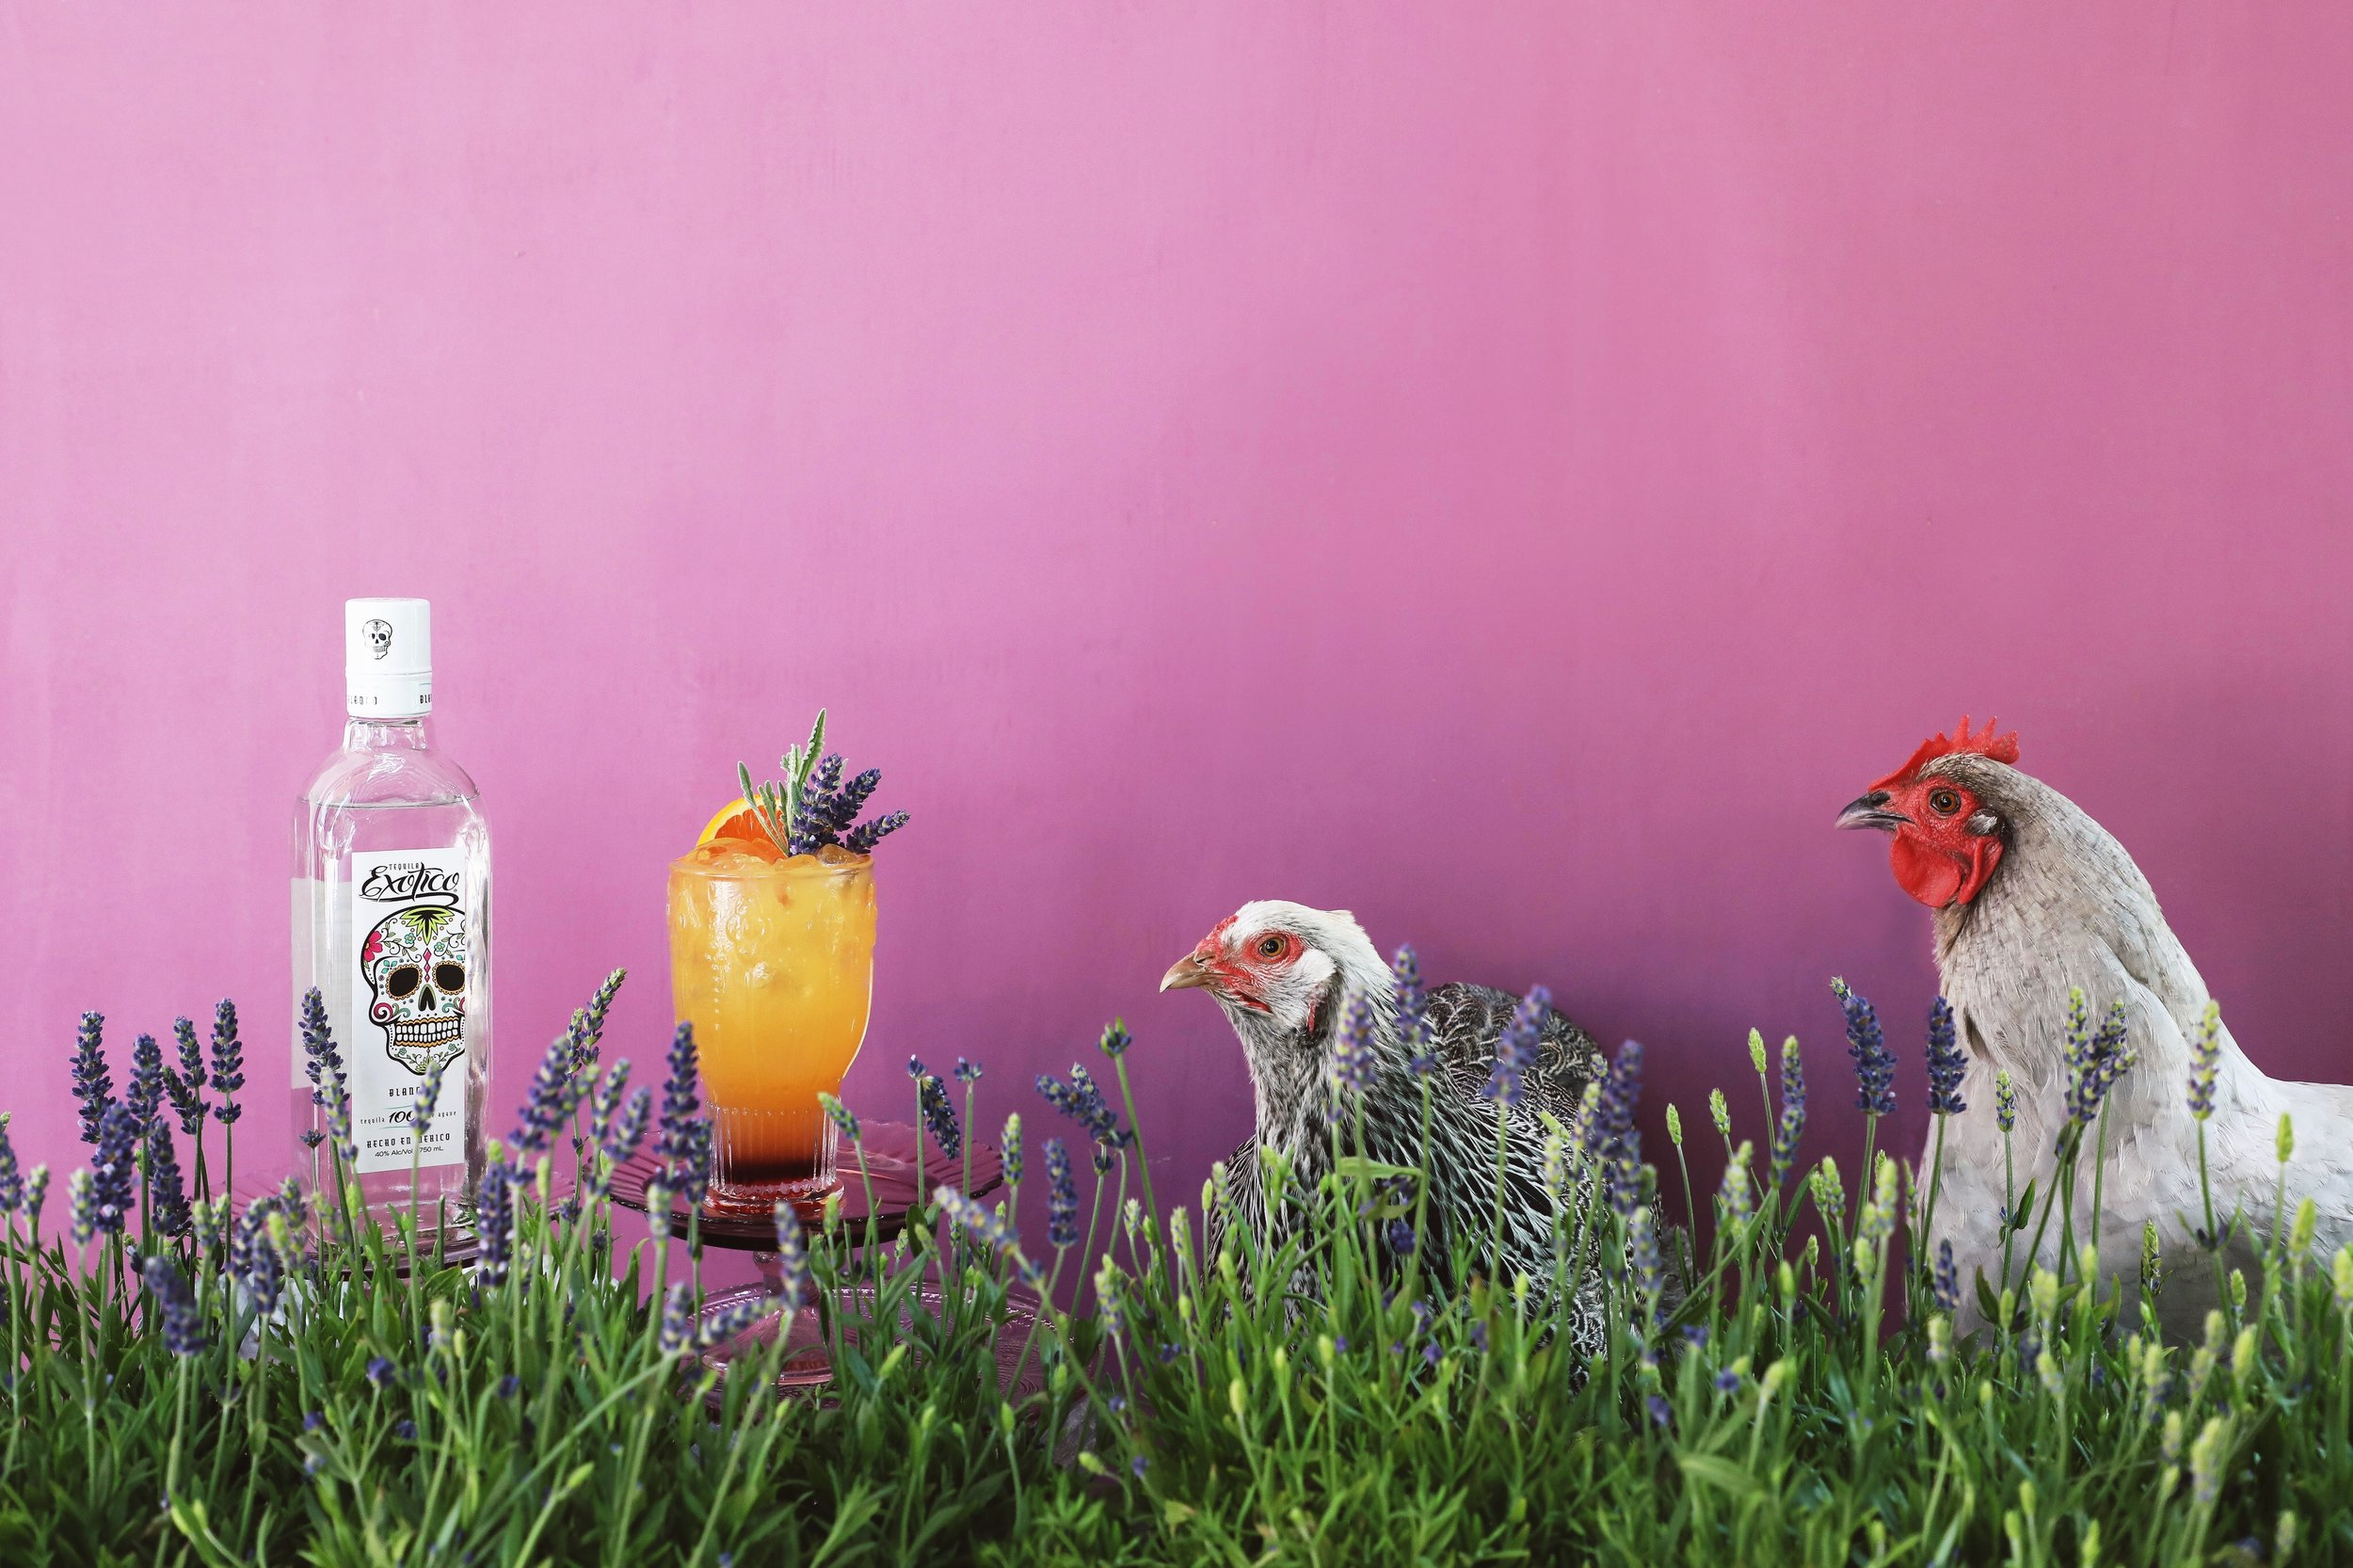 Lavender Tequila Sunrise made with Exotico Tequila Blanco, fresh orange juice, and a lavender-infused grenadine | drinkingwithchickens.com